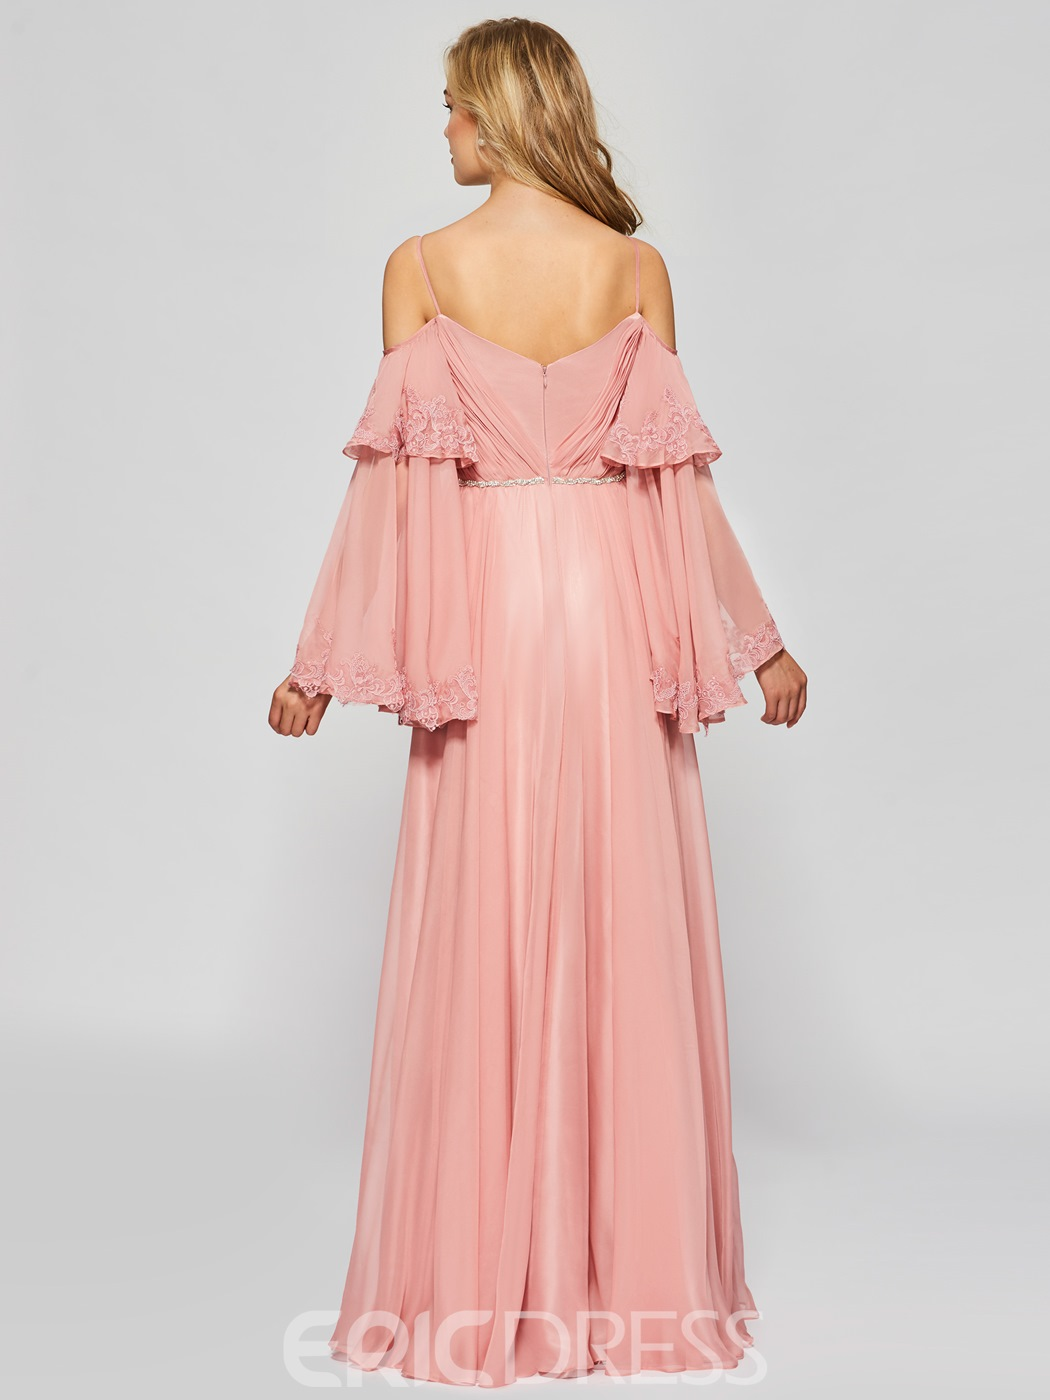 Ericdress A Line Spaghetti Straps Cold Shoulder Prom Dress With Long Sleeve